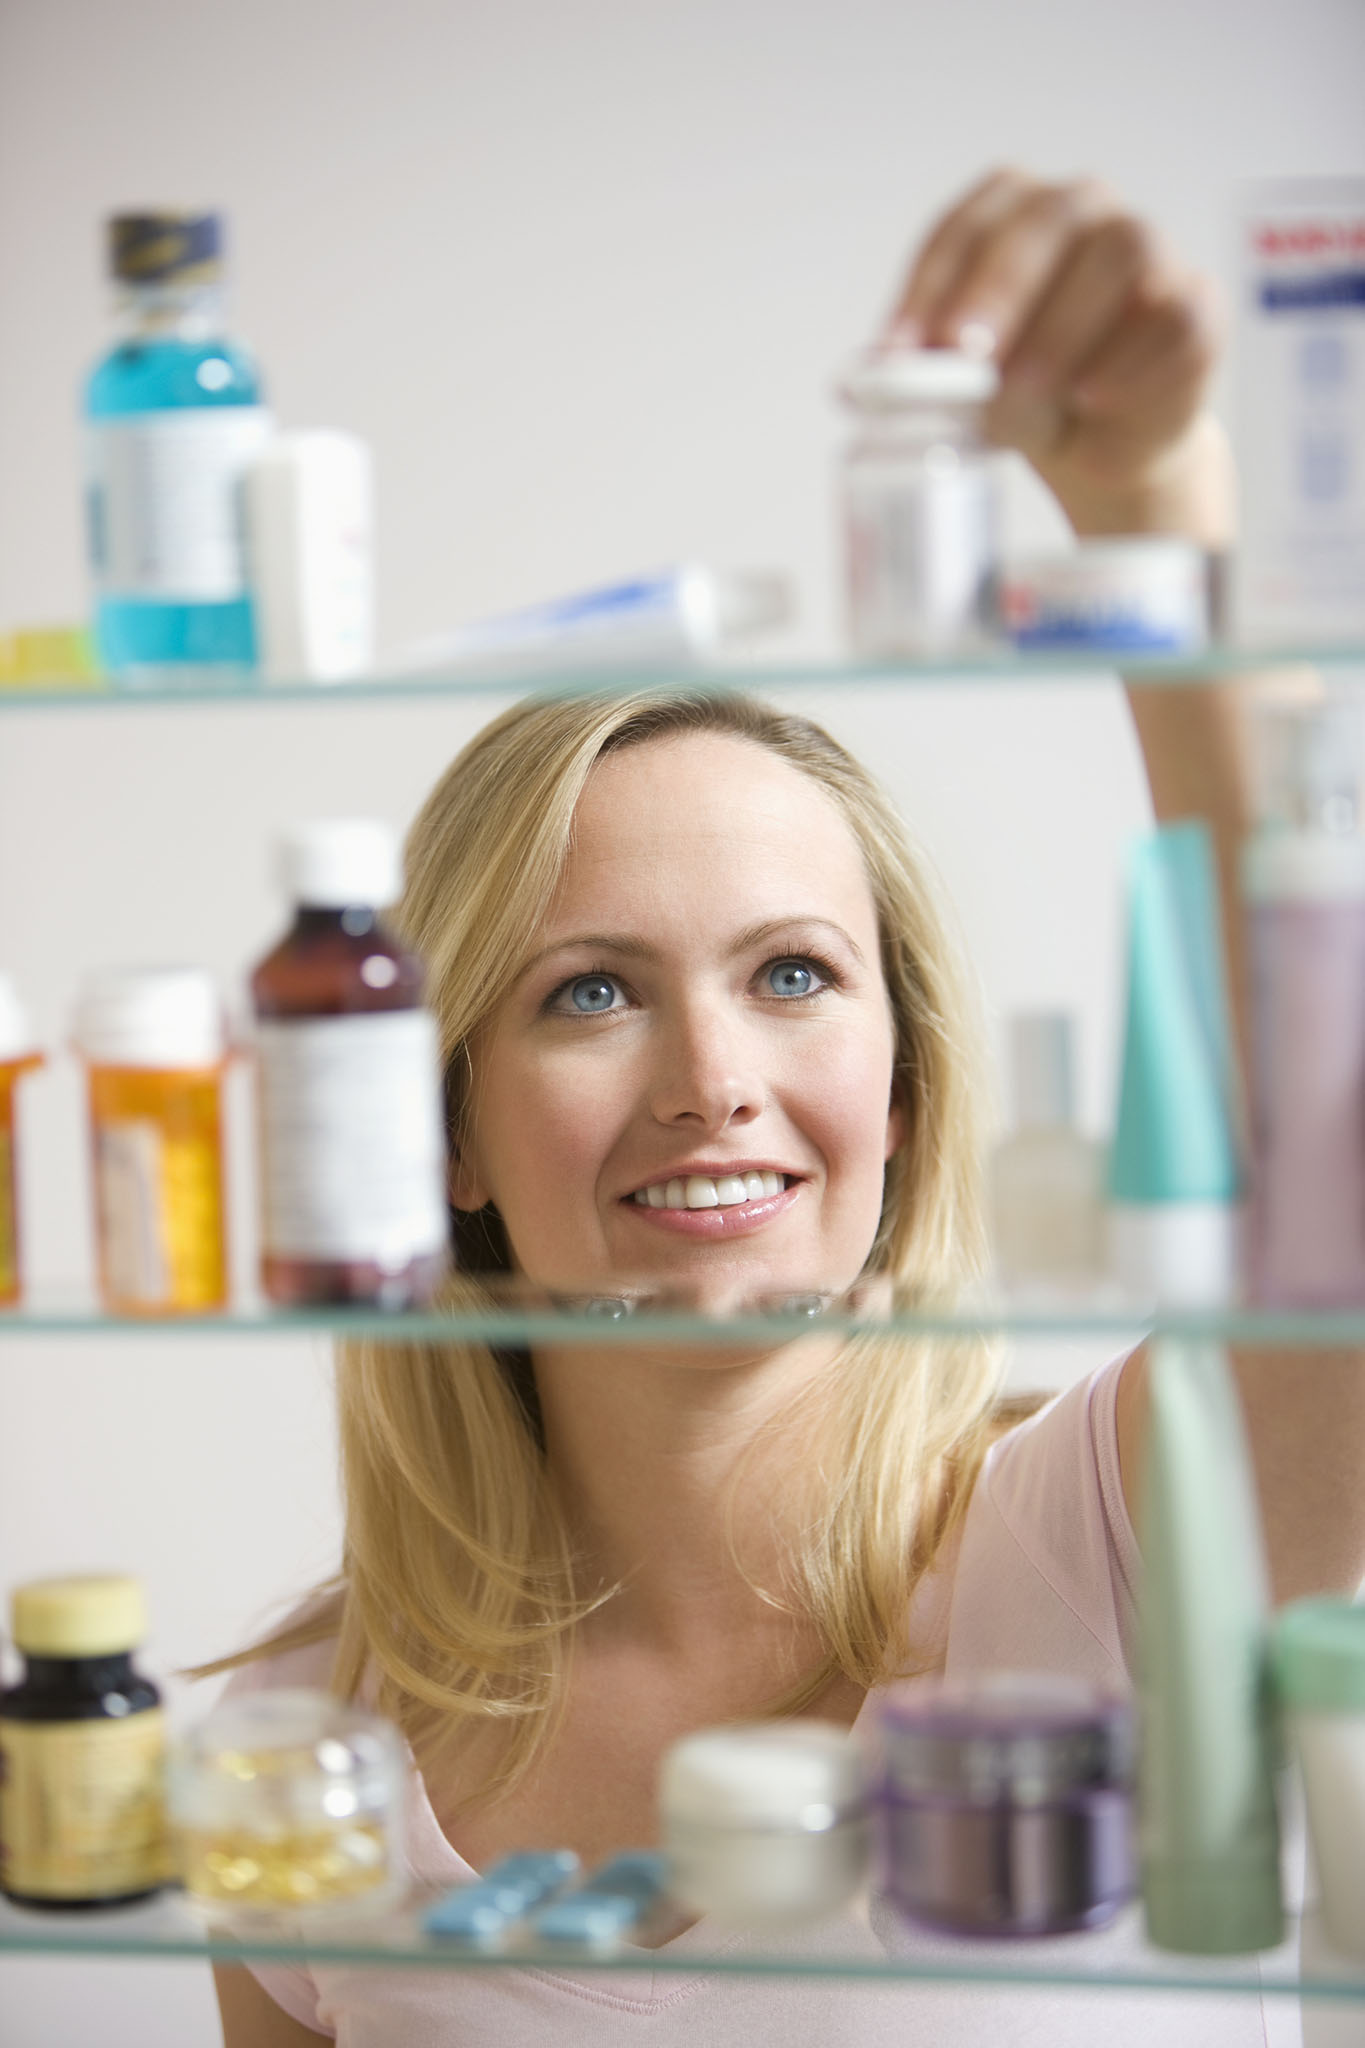 Smiling woman placing medicine on shelves